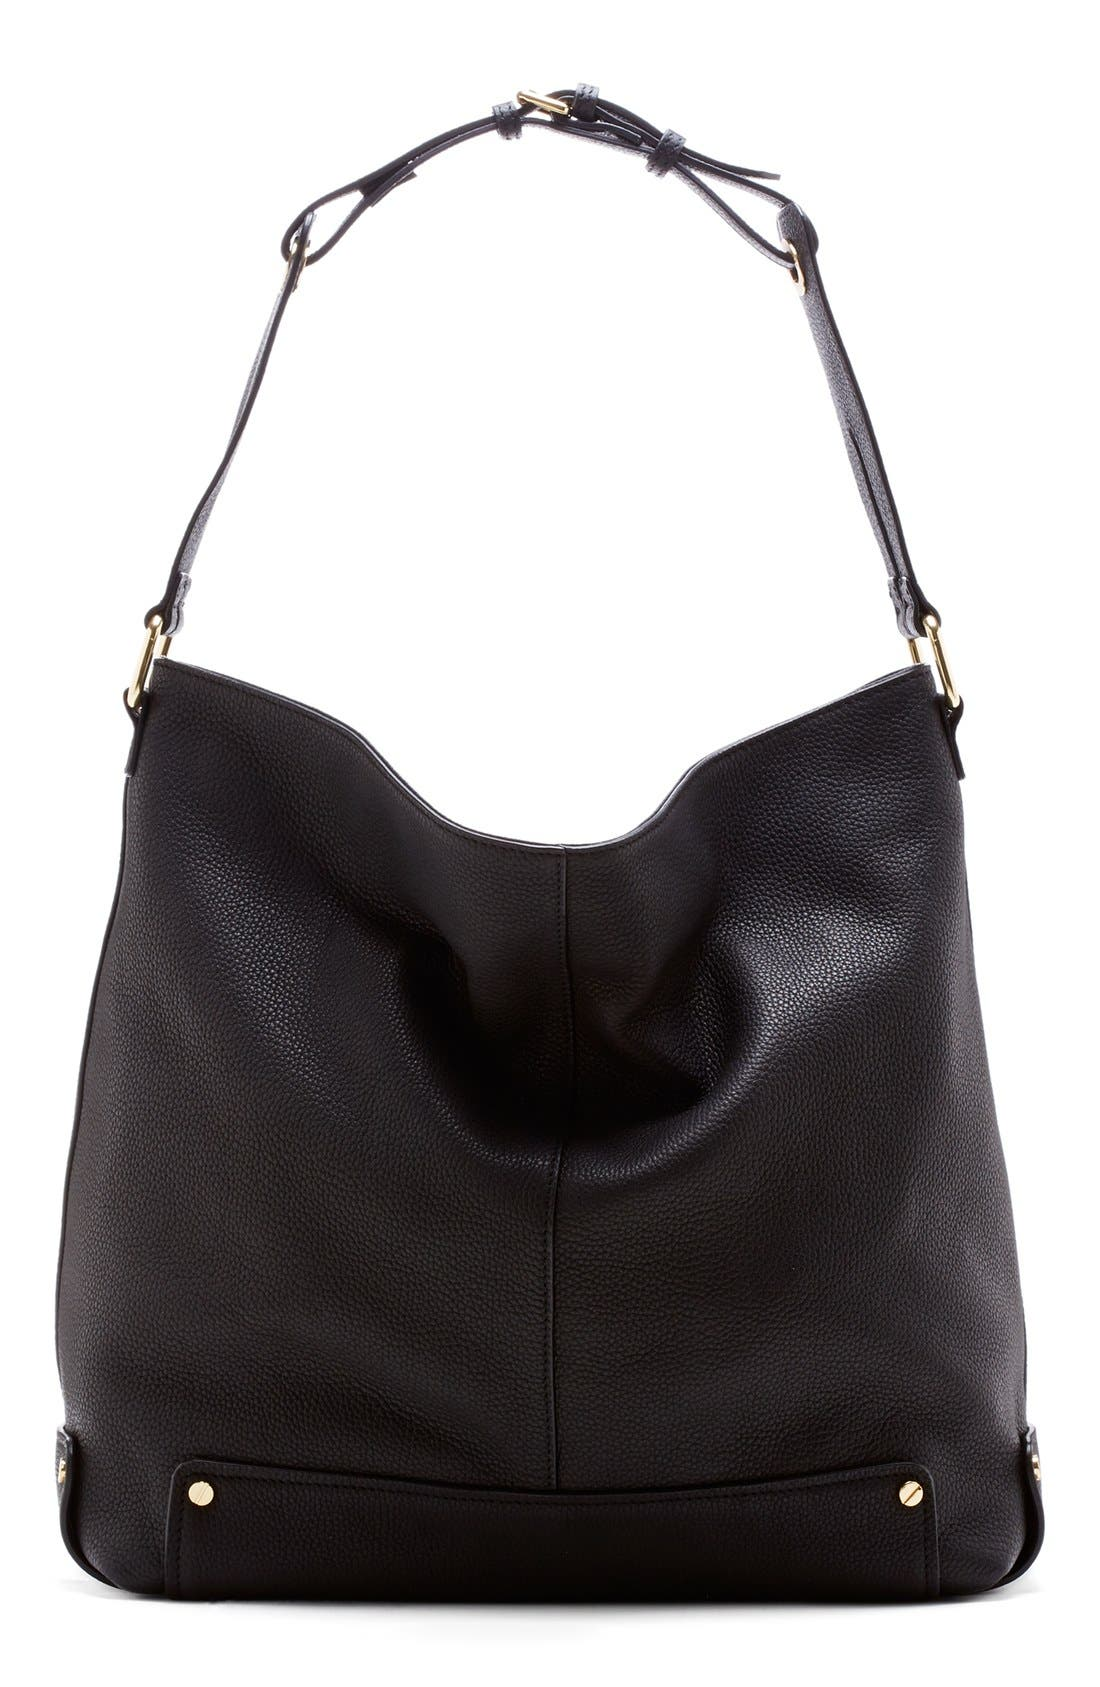 Alternate Image 1 Selected - Vince Camuto 'Jill' Leather Hobo